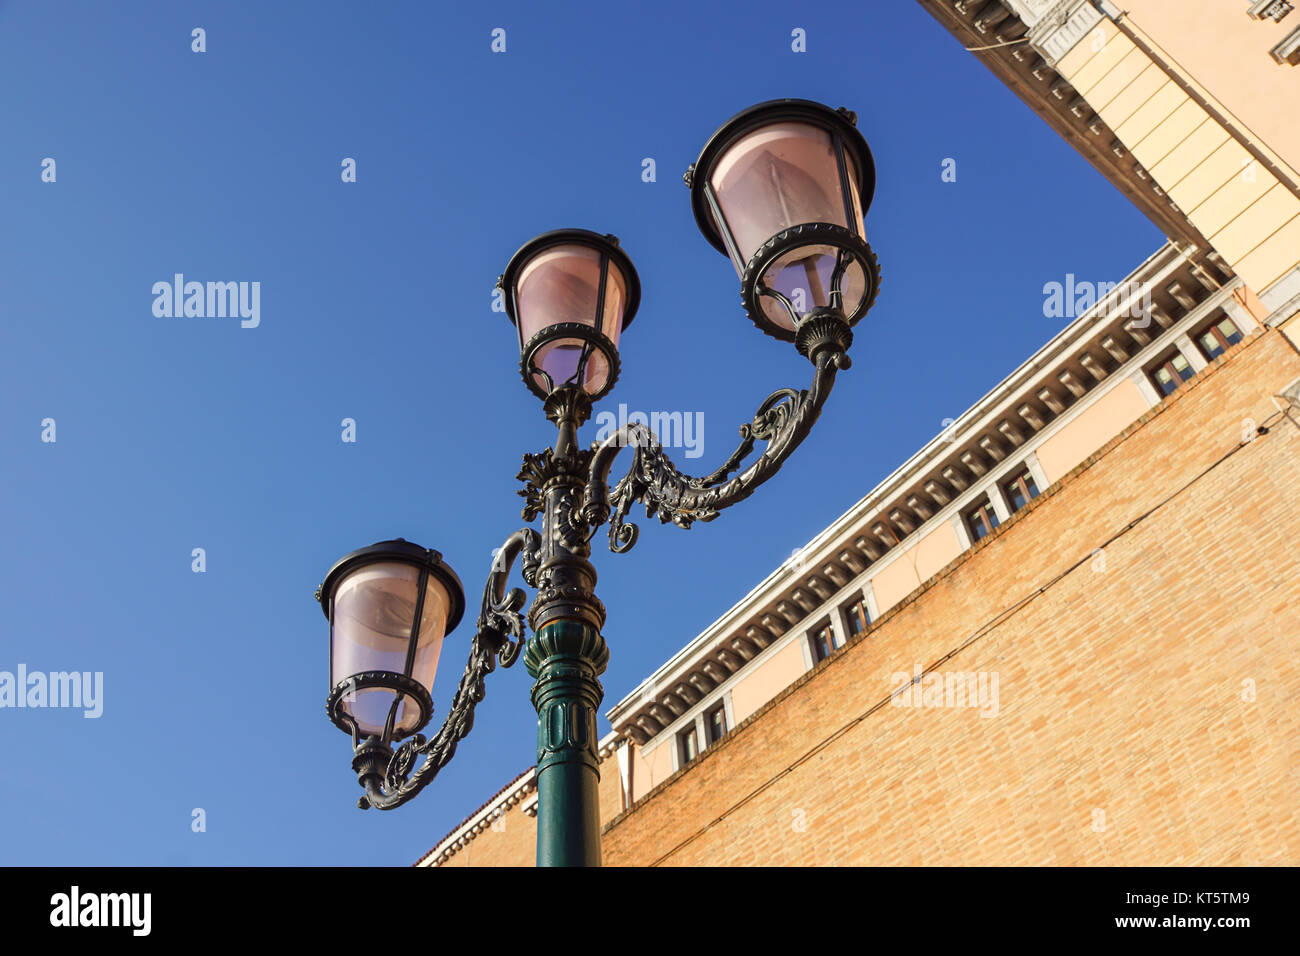 retro vintage street lamp isolated on sky background. Stock Photo